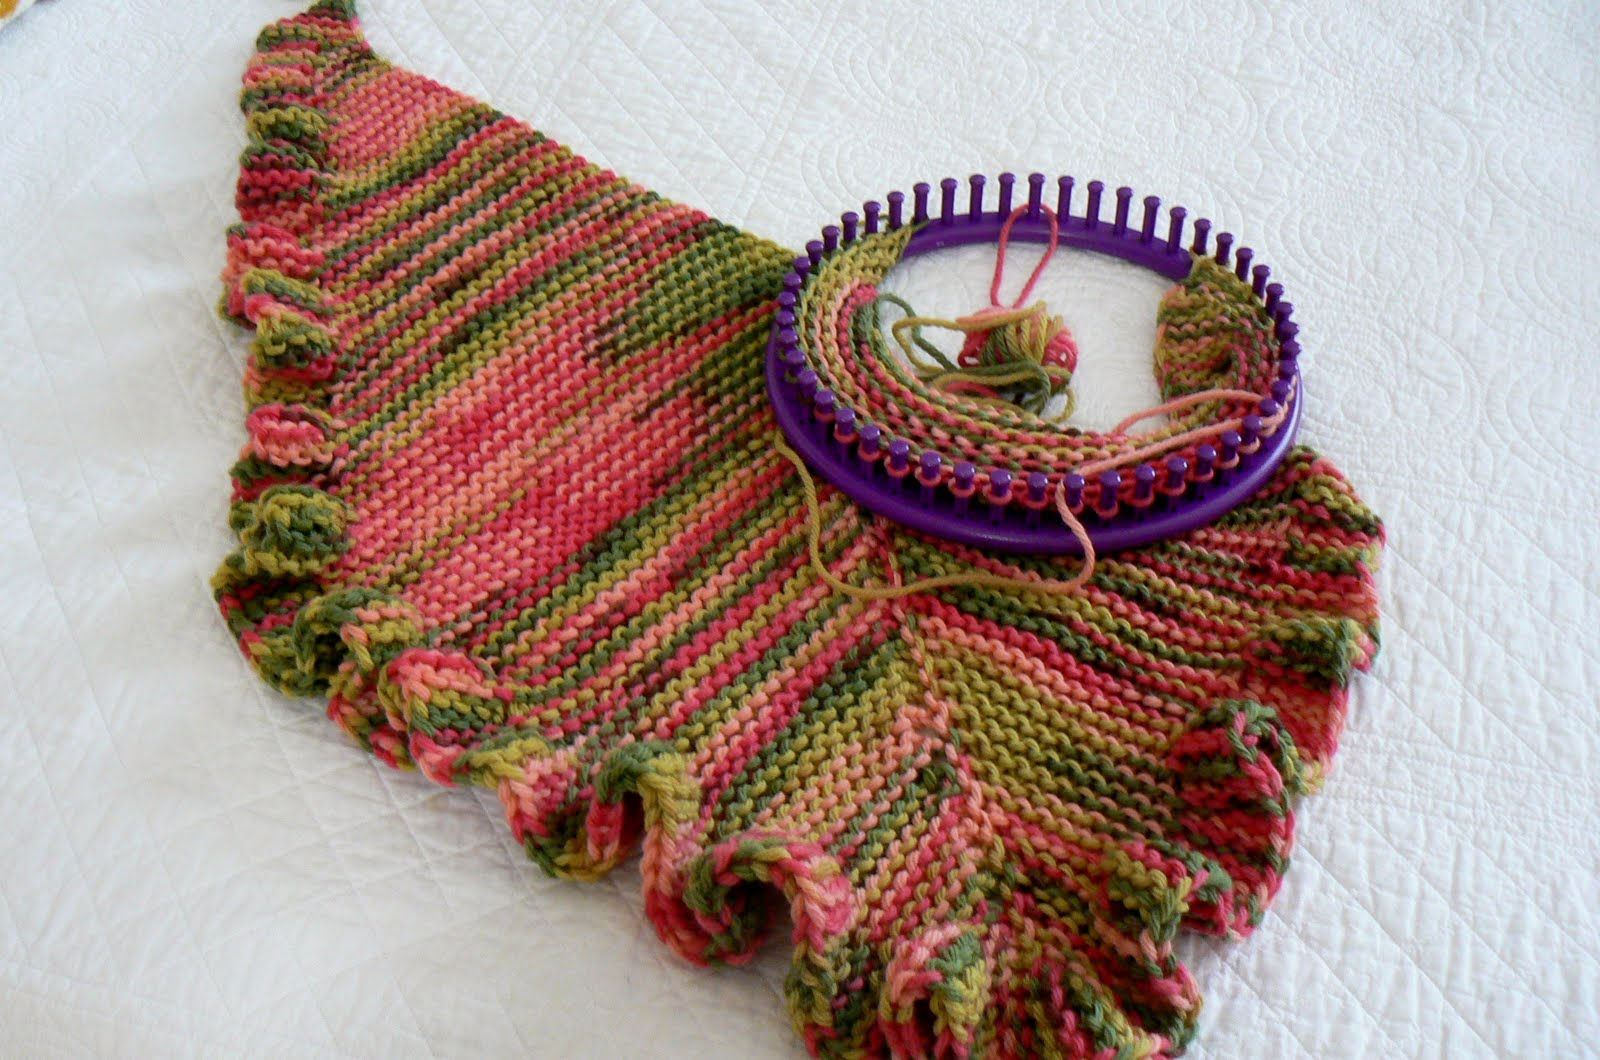 Find The Easy Patterns: Loom Knitting Patterns